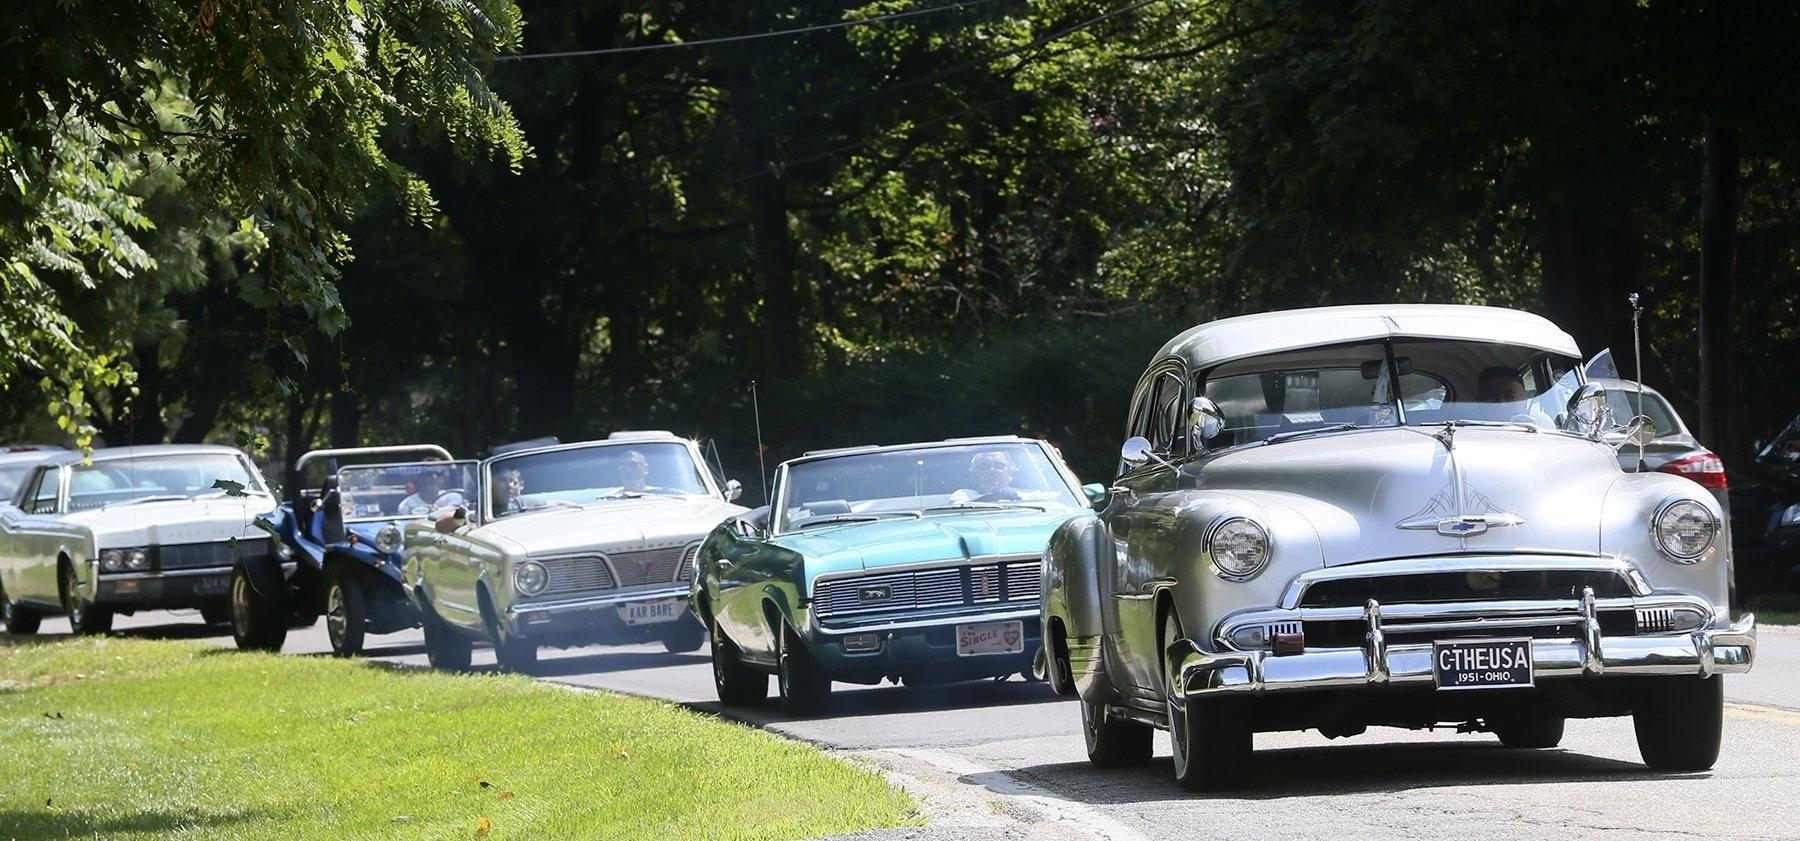 Family, car enthusiasts turn veteran's dying wish into heartfelt memorial ride